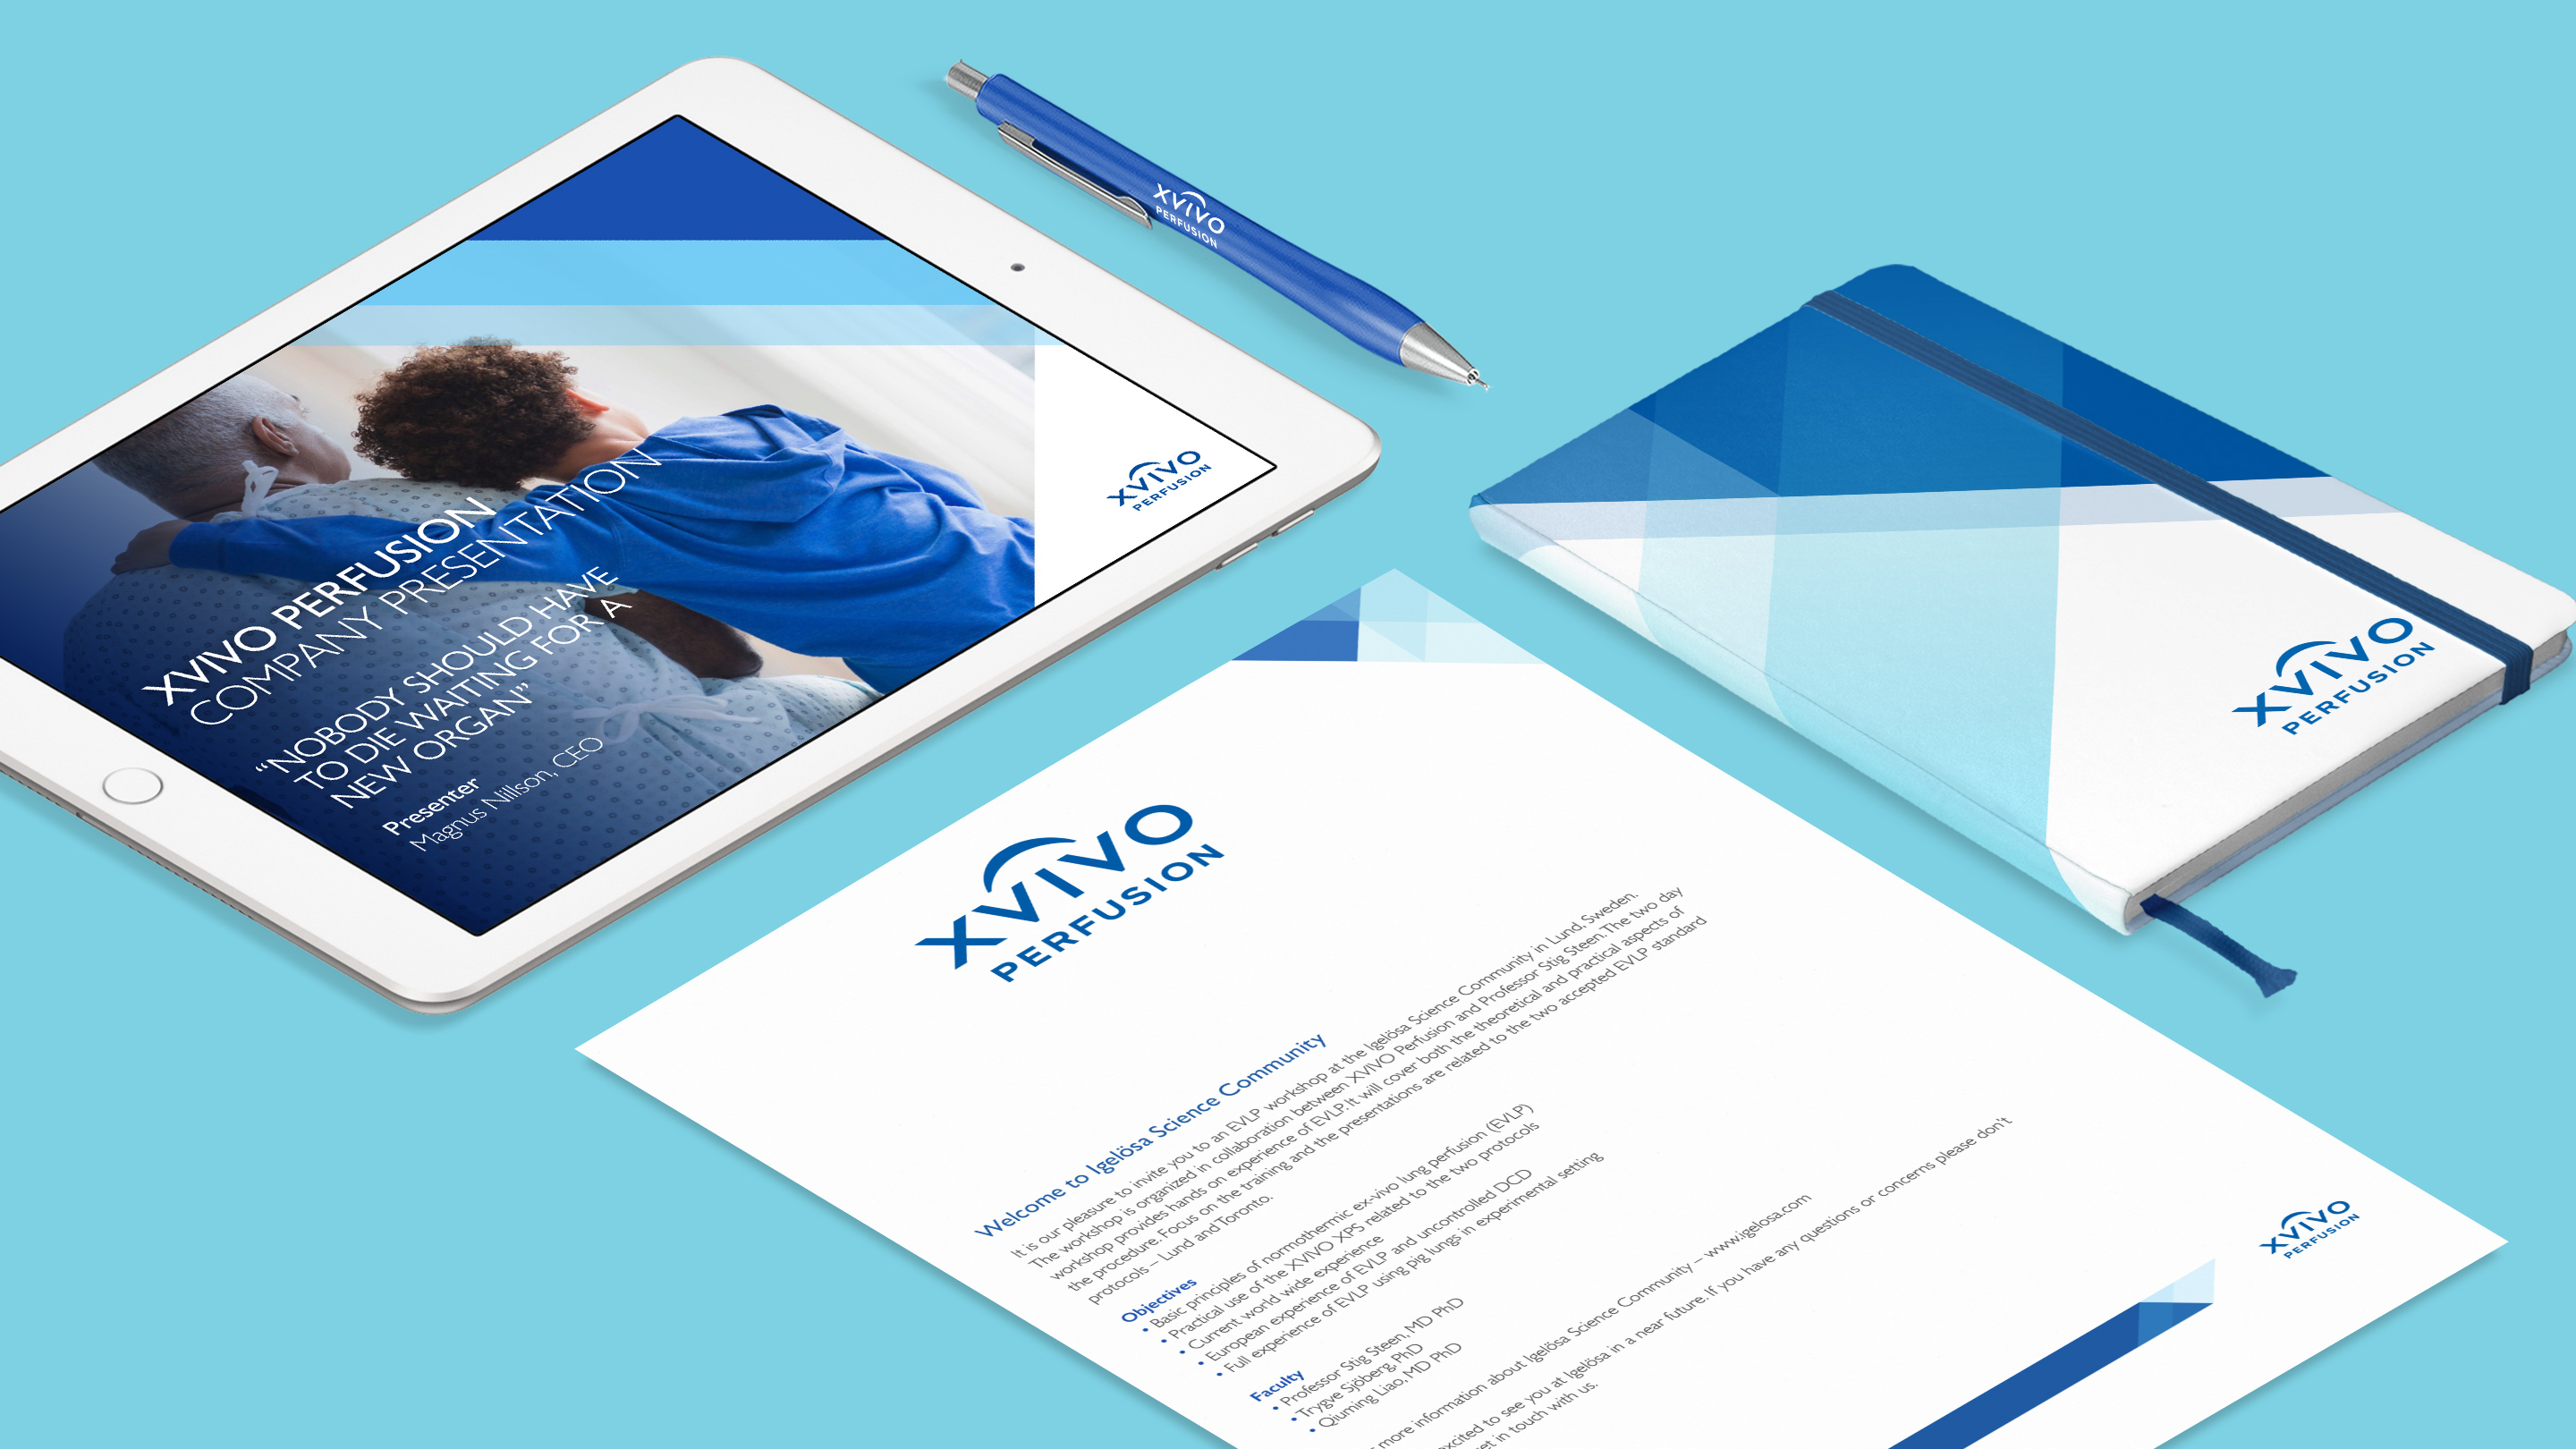 XVIVO stationery